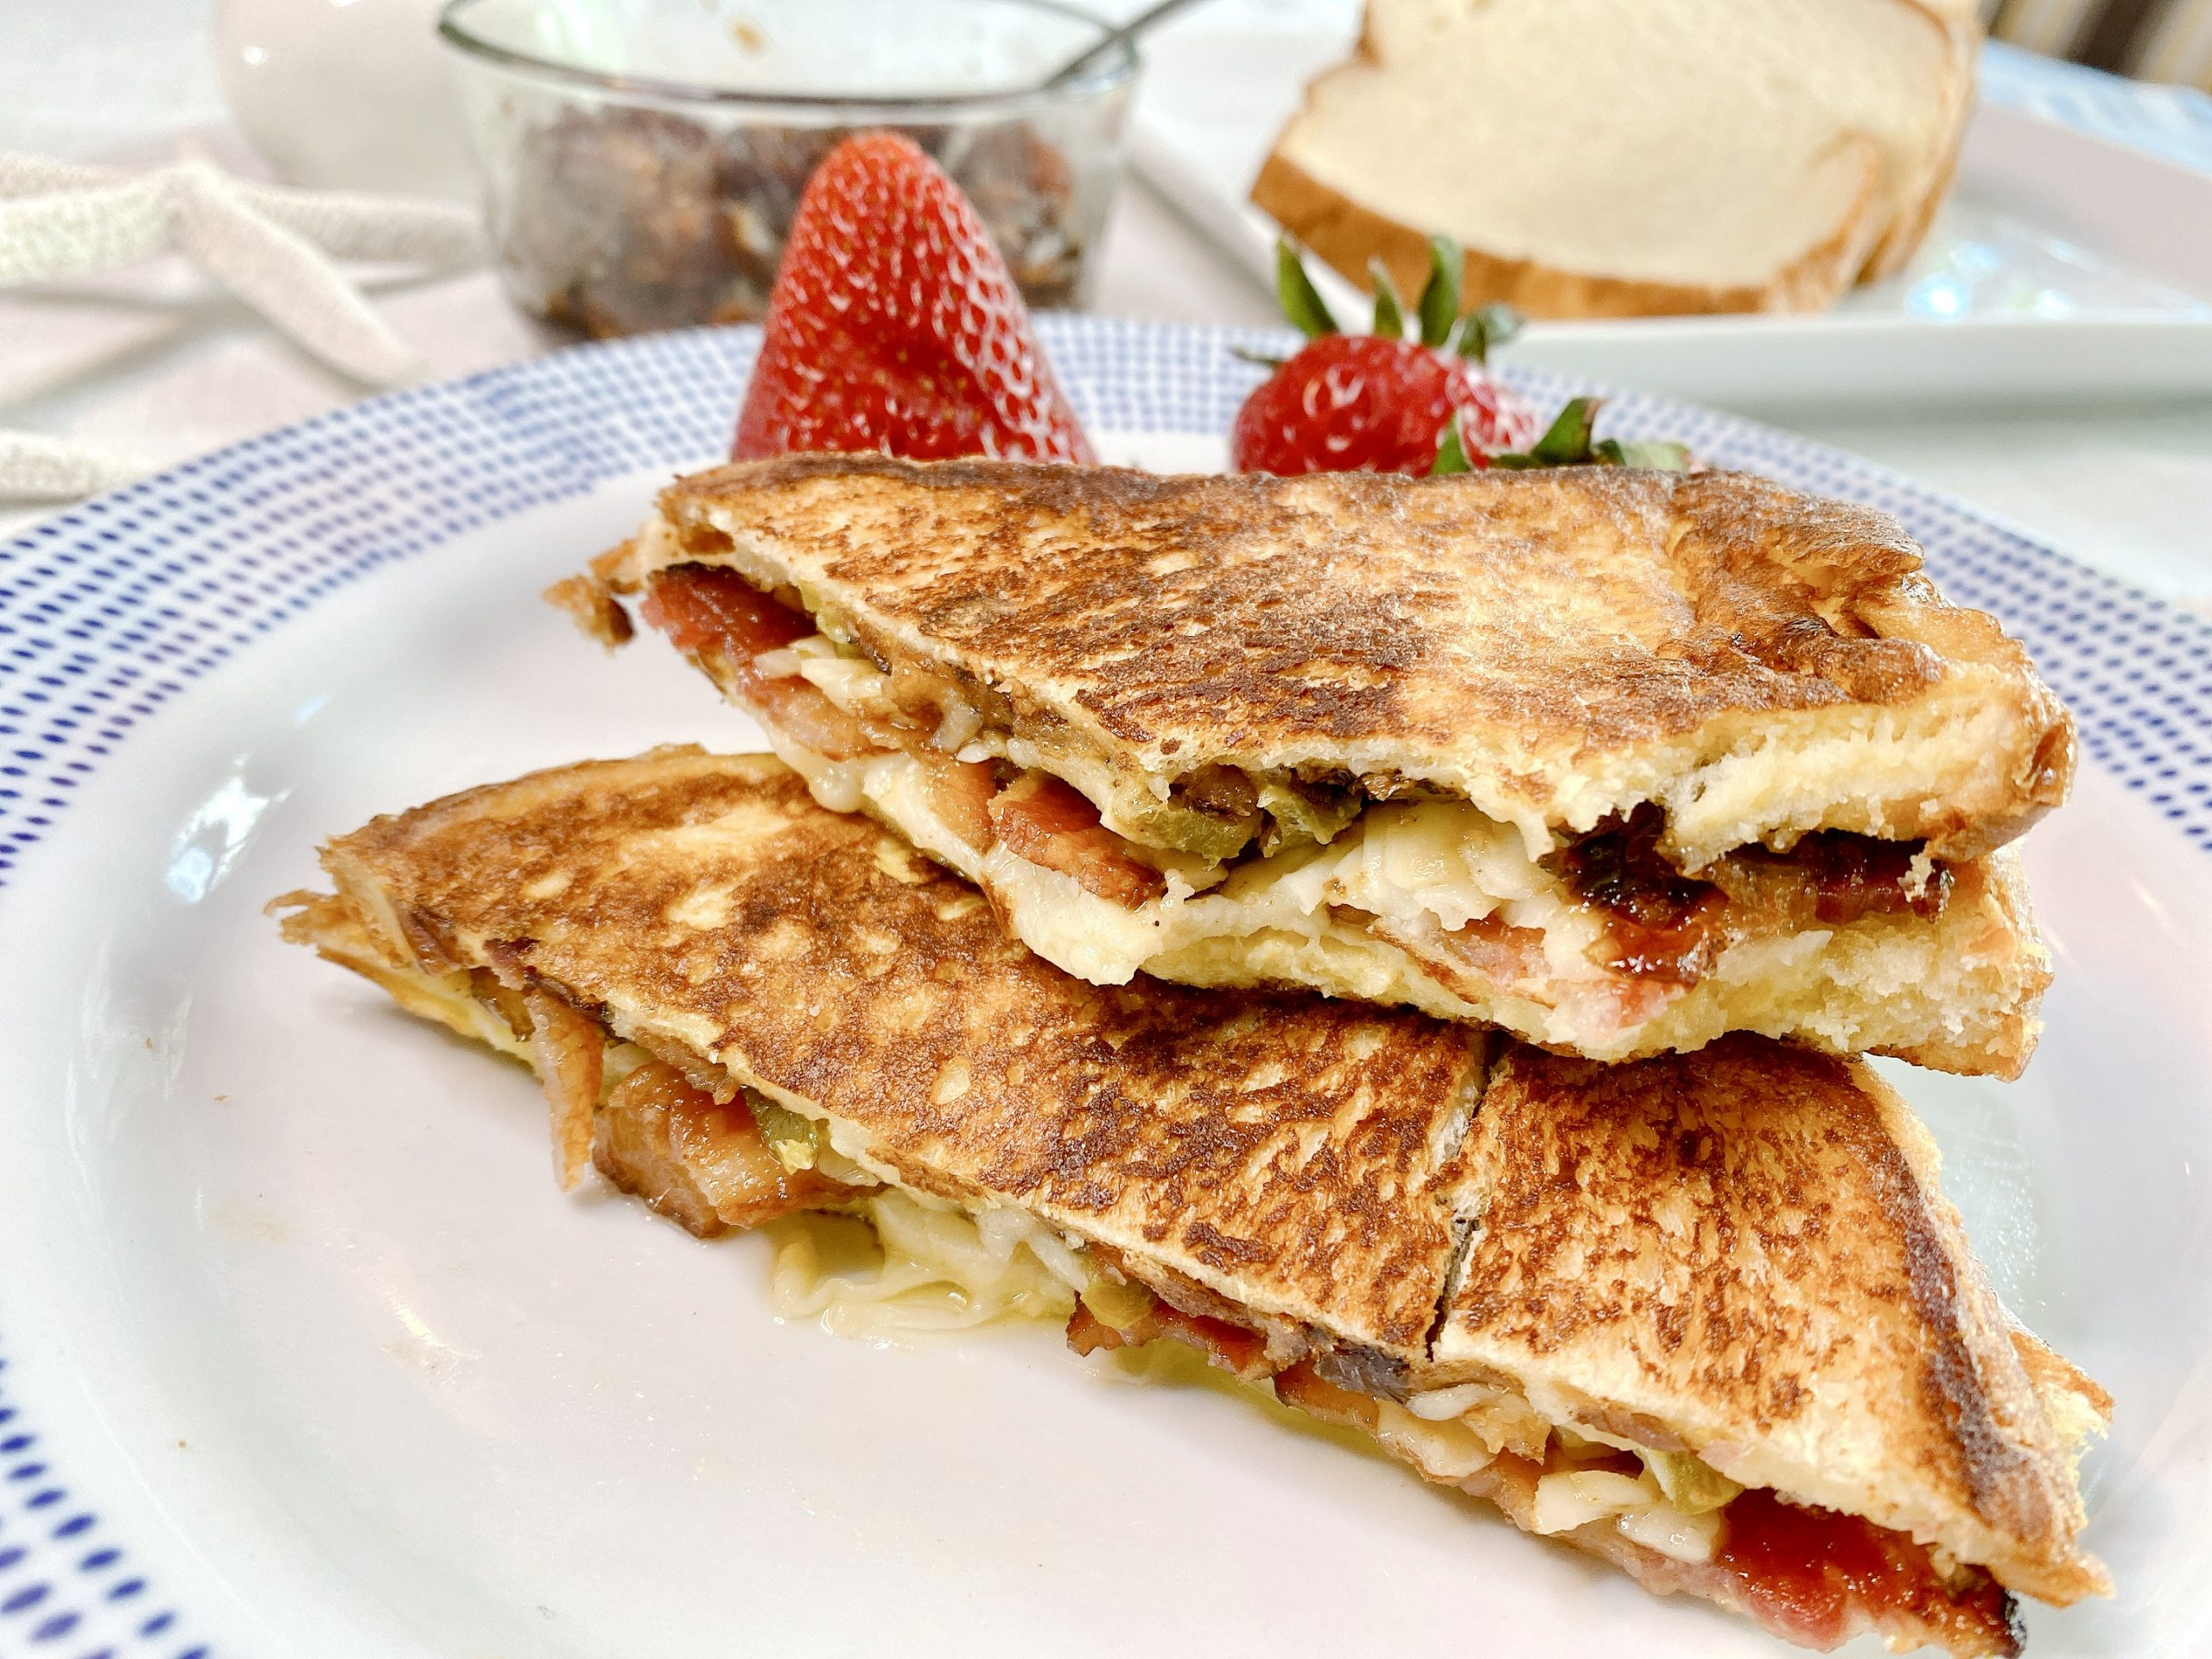 Monte Cristo sandwich stuffed with Bacon Jam, presented on plate with fresh strawberries